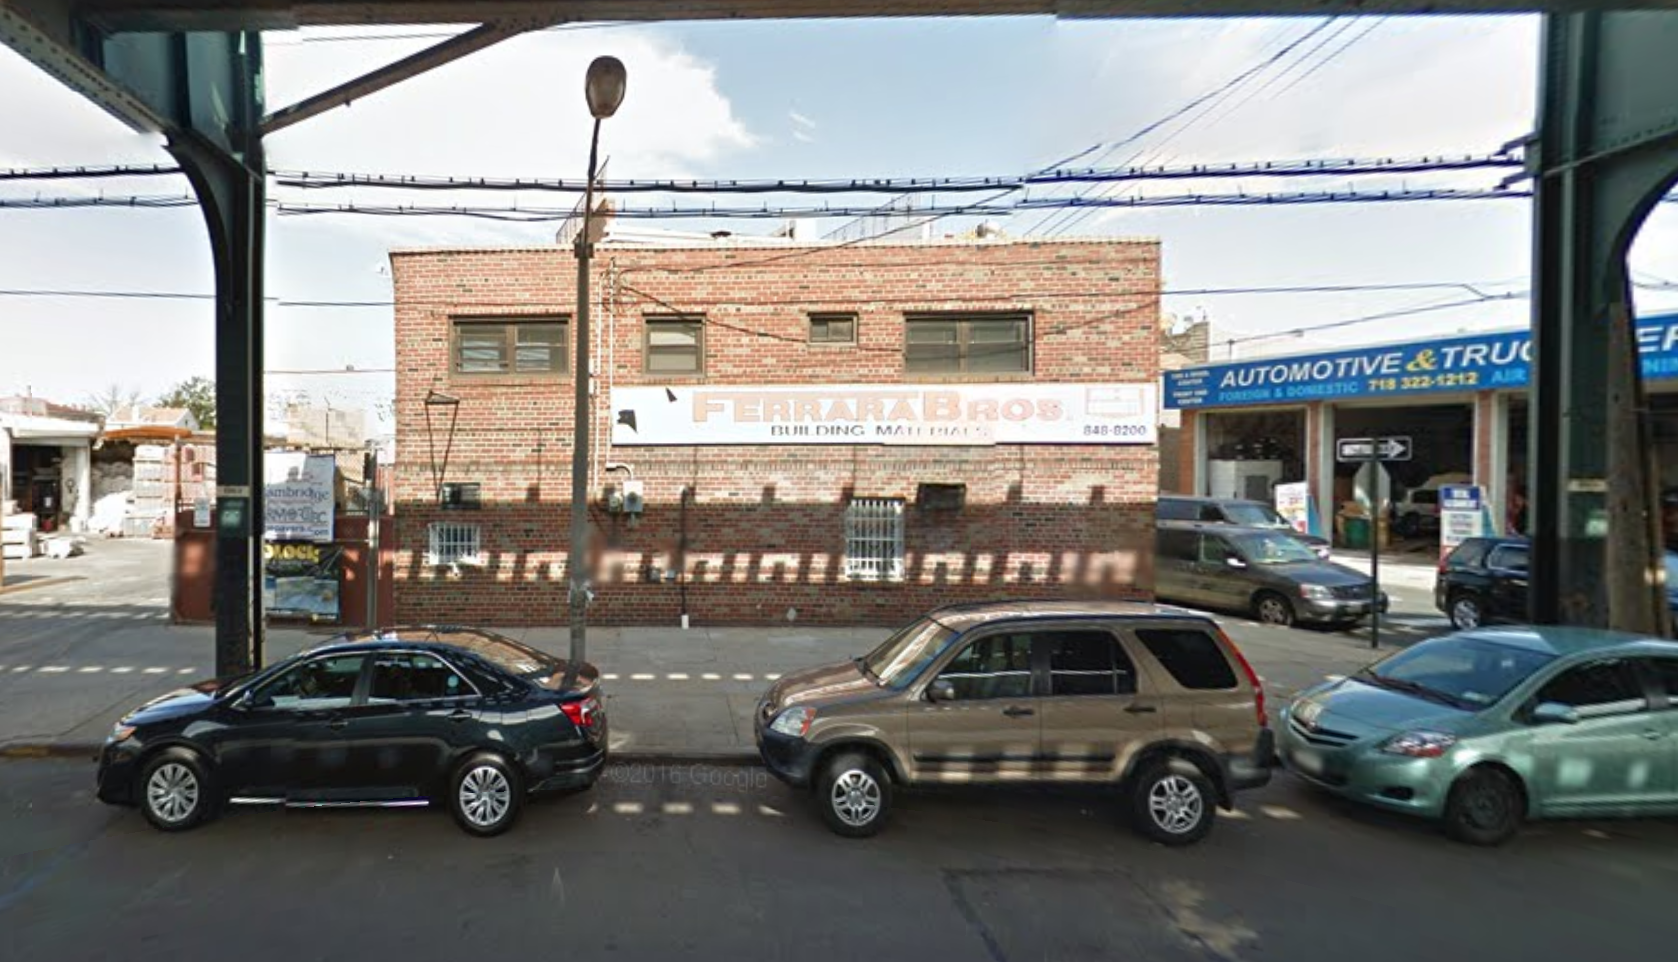 89-19 Liberty Avenue, image via Google Maps